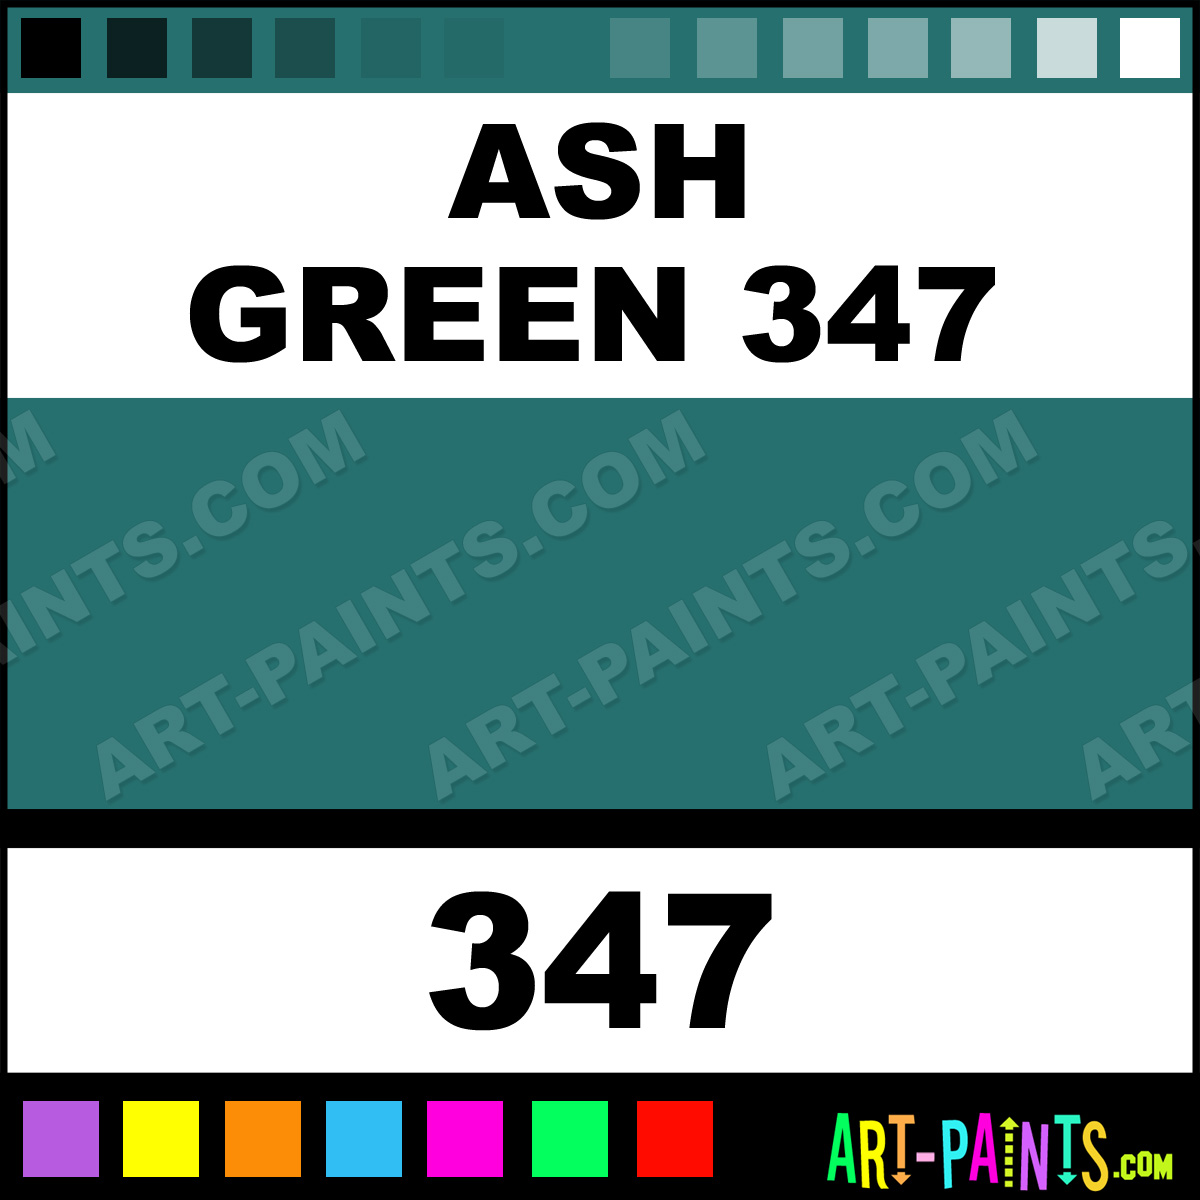 Ash green flower and fruit pastel paints